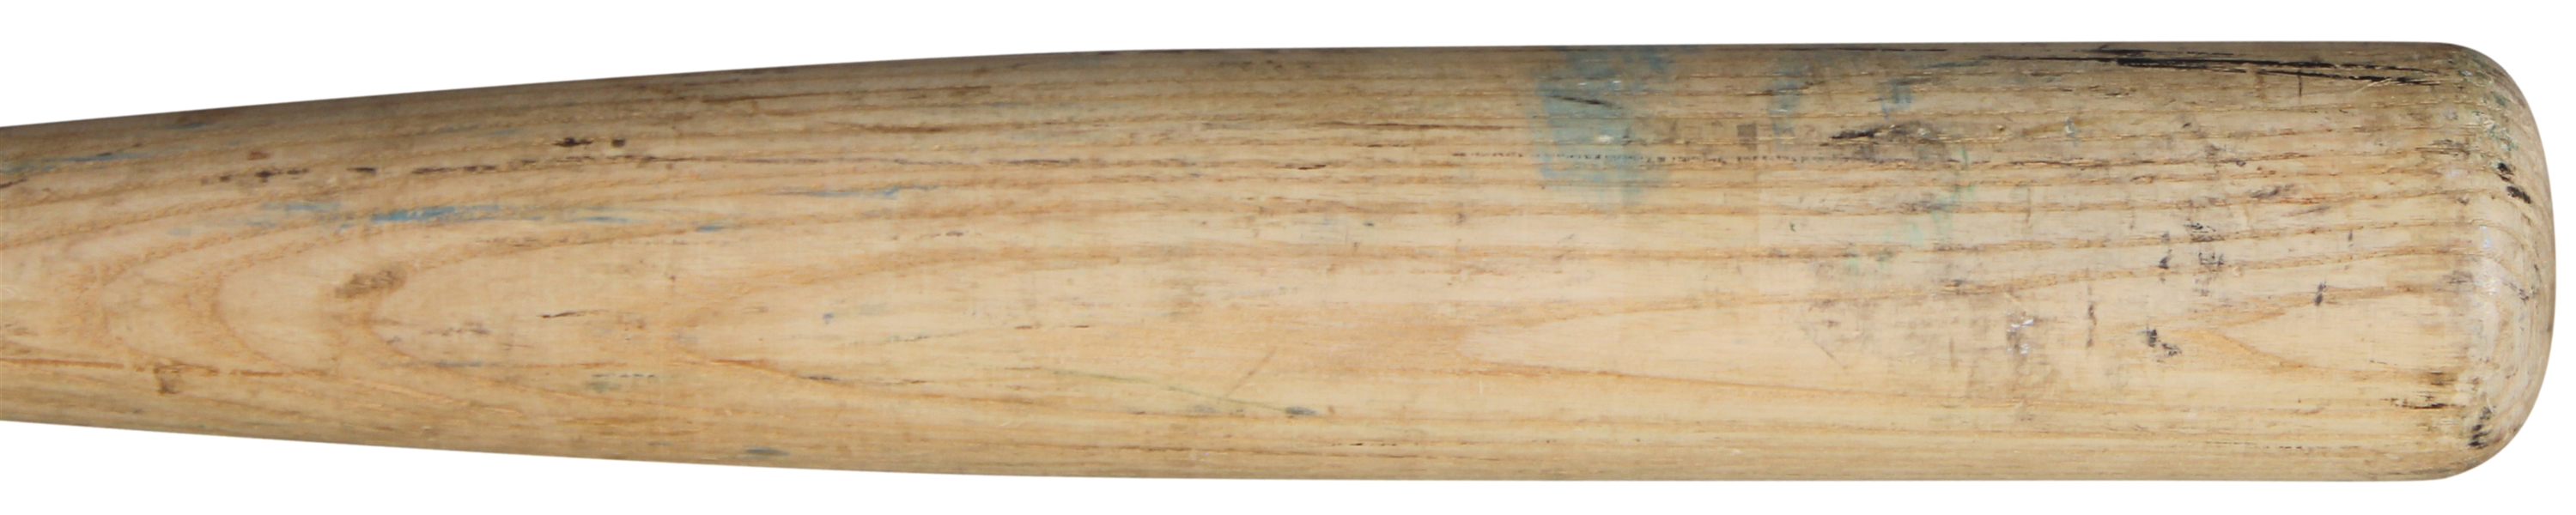 1983/86 WILLIE RANDOLPH AUTOGRAPHED GAME USED BAT